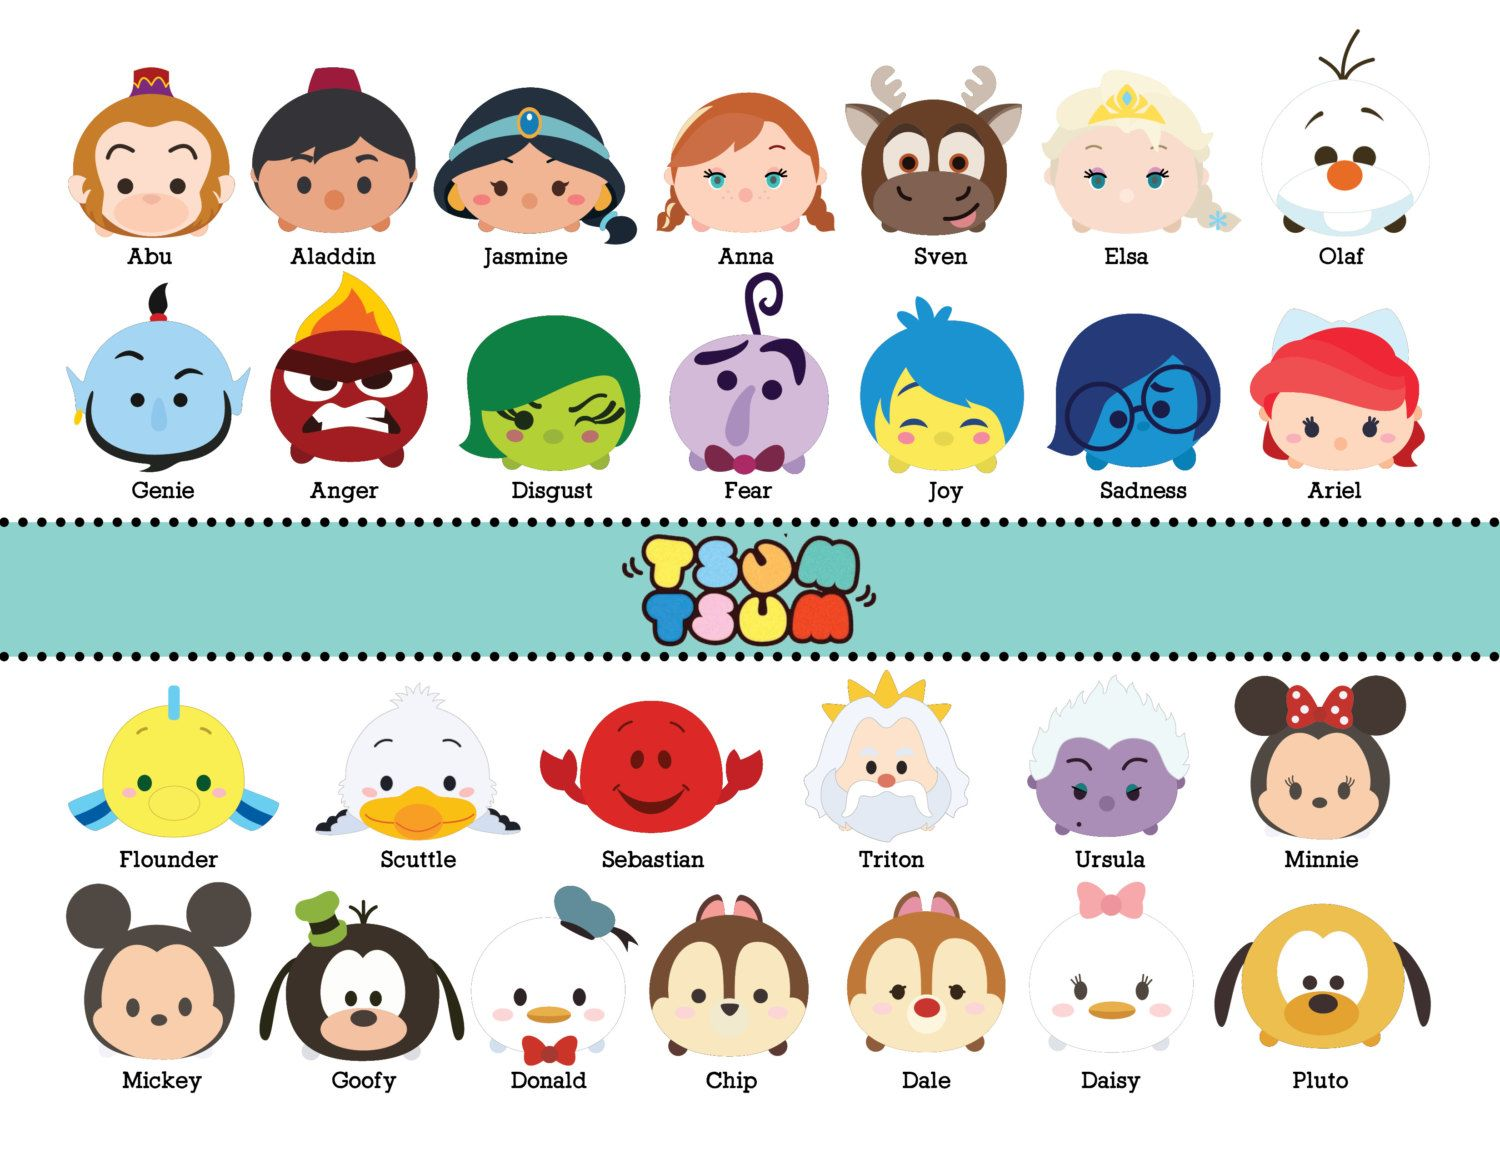 DISNEY TSUM 65 Images At 300dpi Resolution By